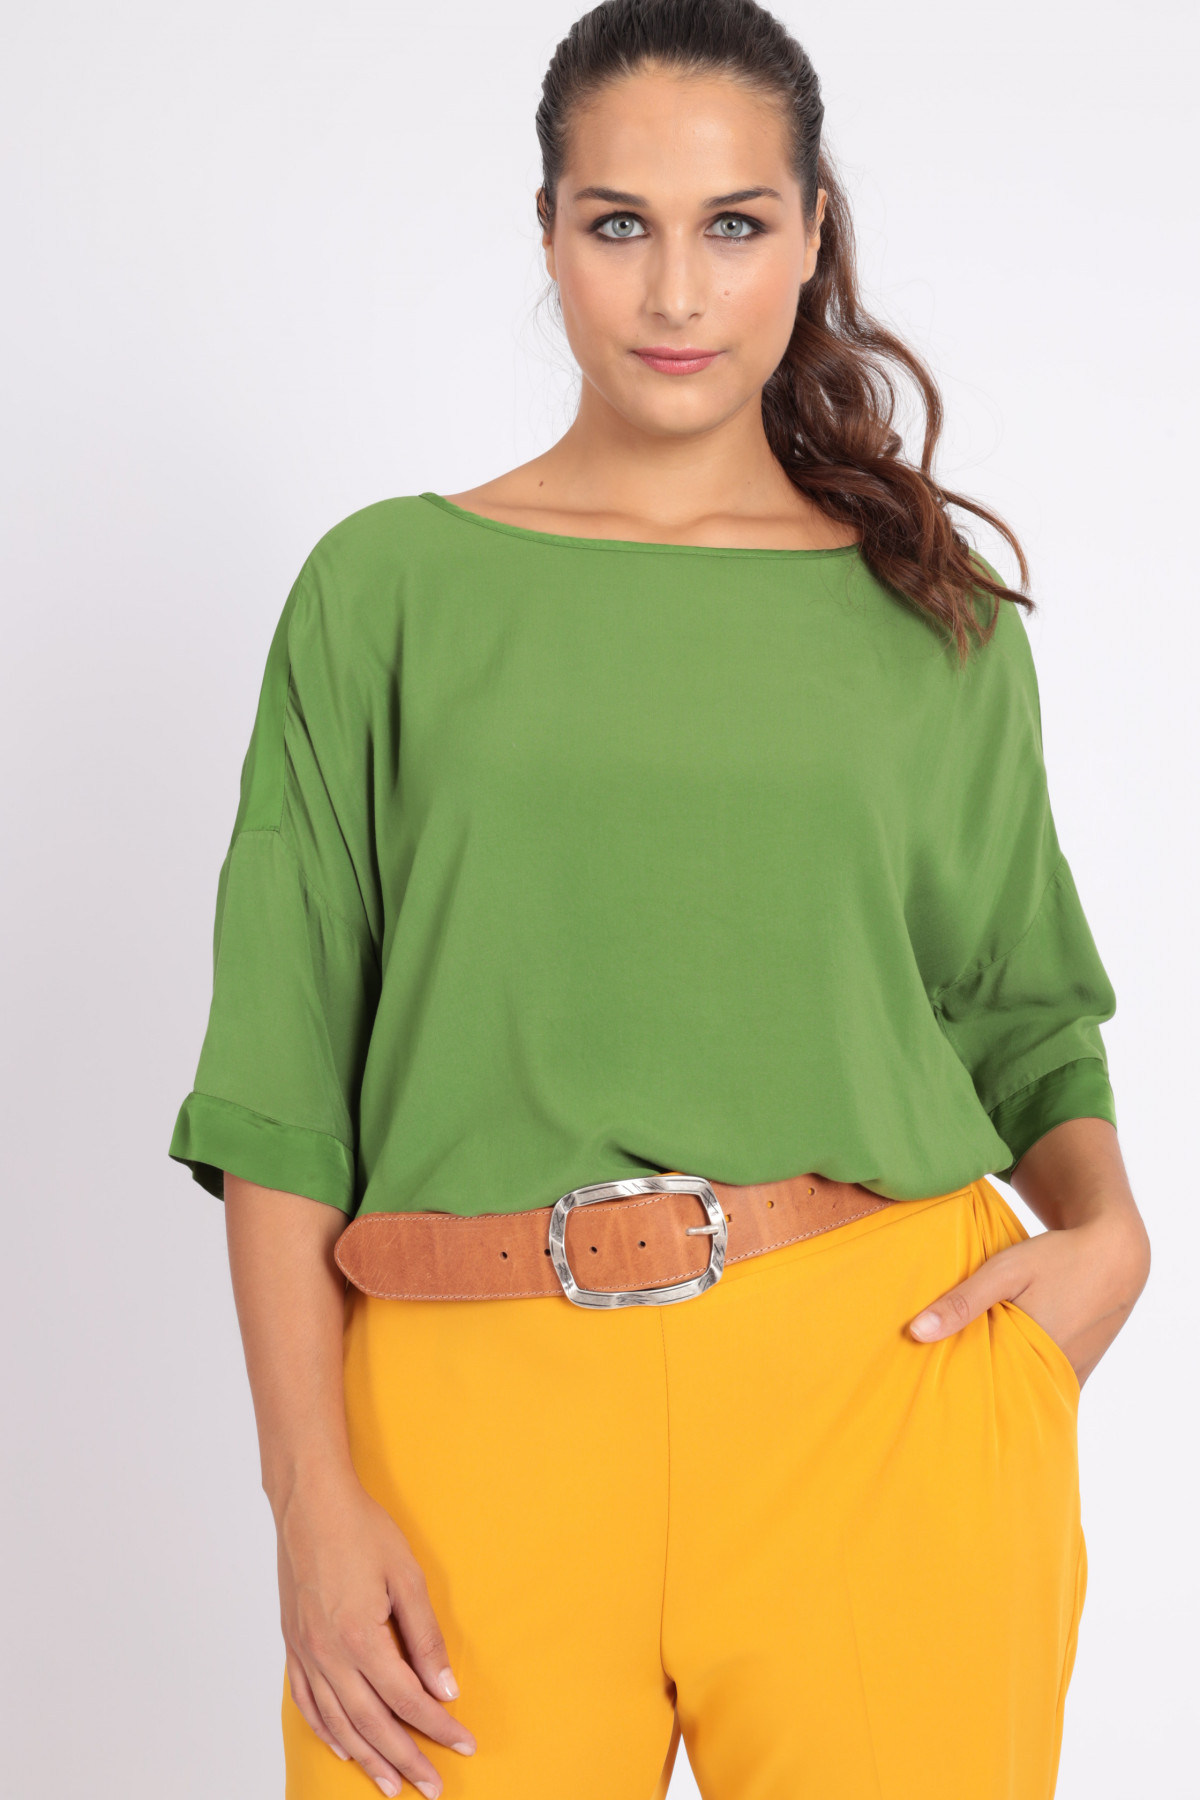 Over 1/2 Sleeve Satin Effect Blouse